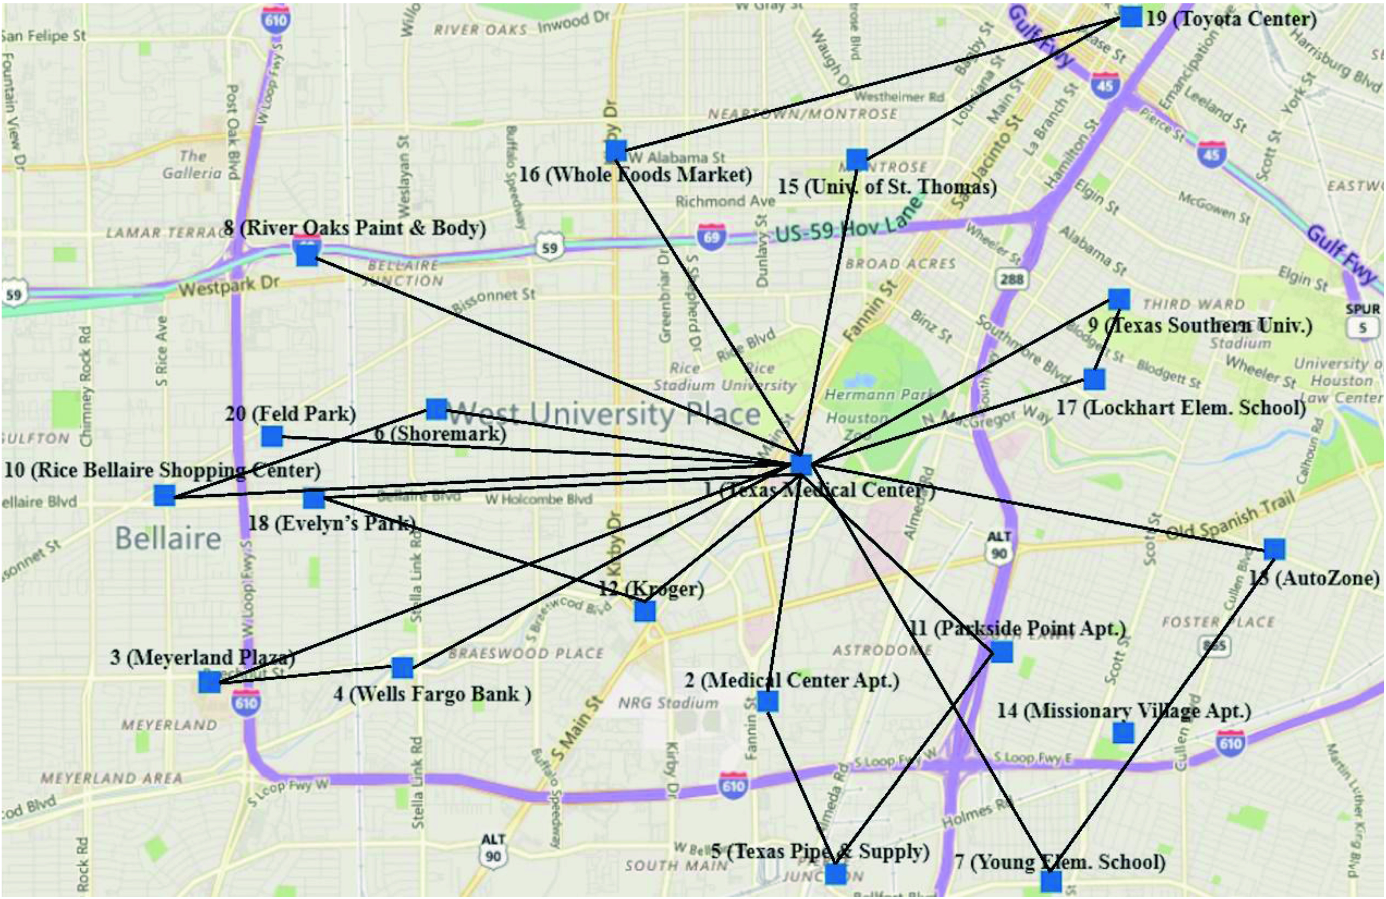 Emergency relief routing models for injured victims